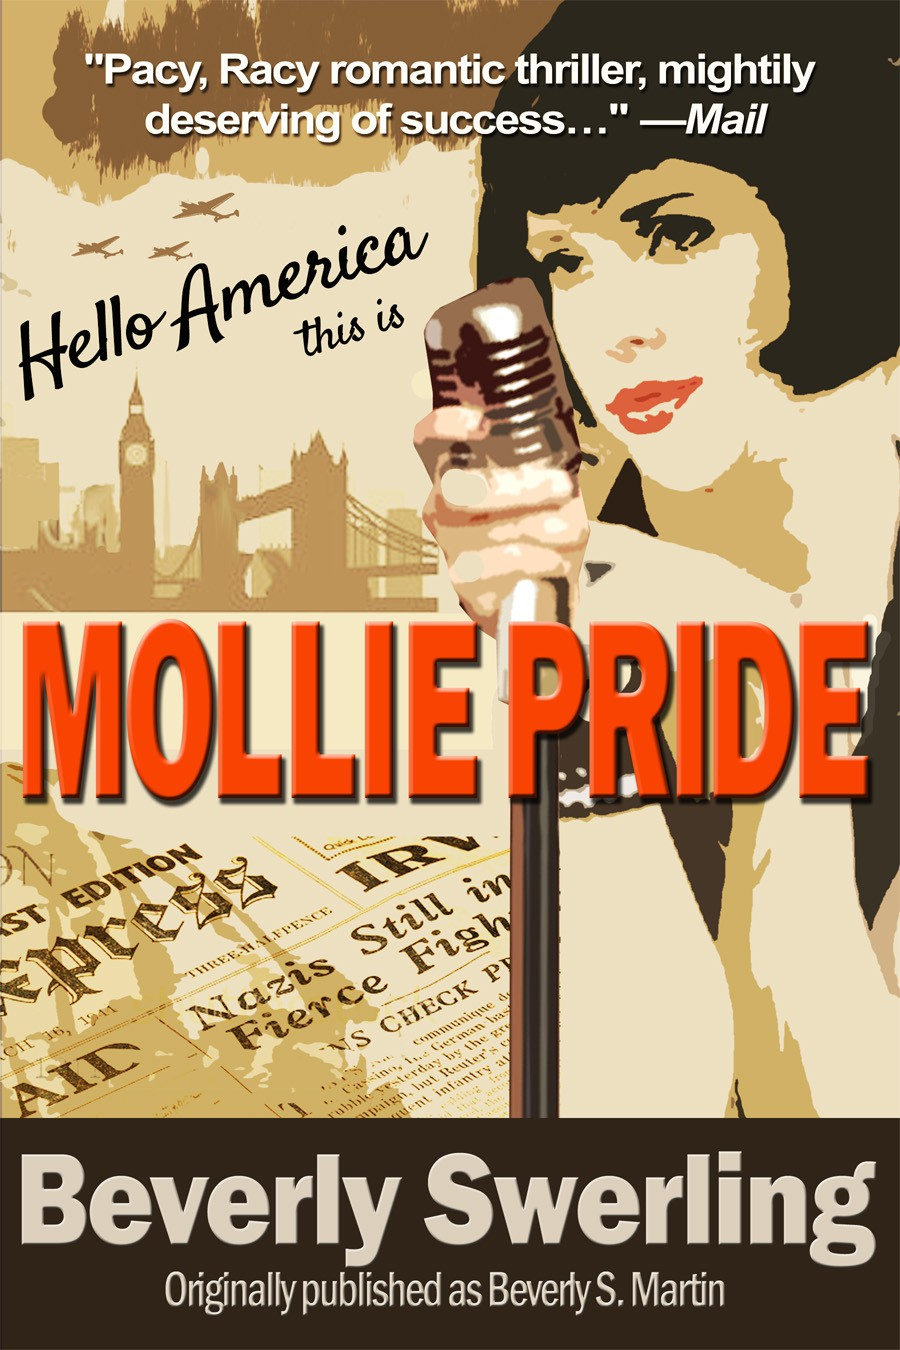 New book or magazine cover wanted for MOLLIE PRIDE, a romantic thriller set mostly during WWII